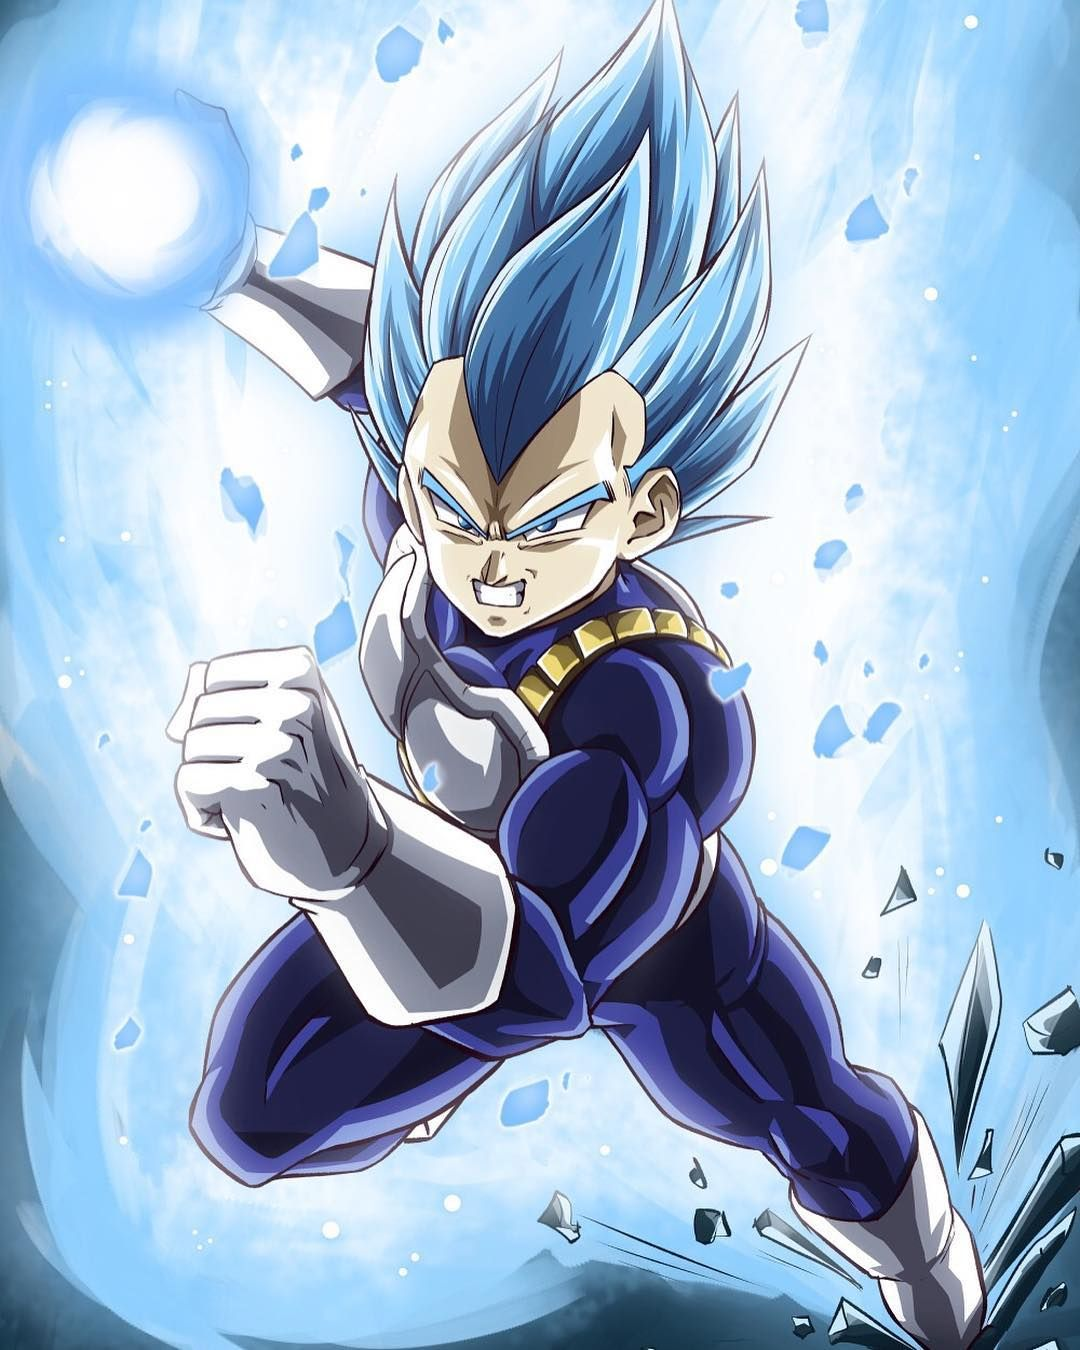 Pin By Mo Ezzy On The Prince Dragon Ball Wallpapers Dragon Ball Super Goku Anime Dragon Ball